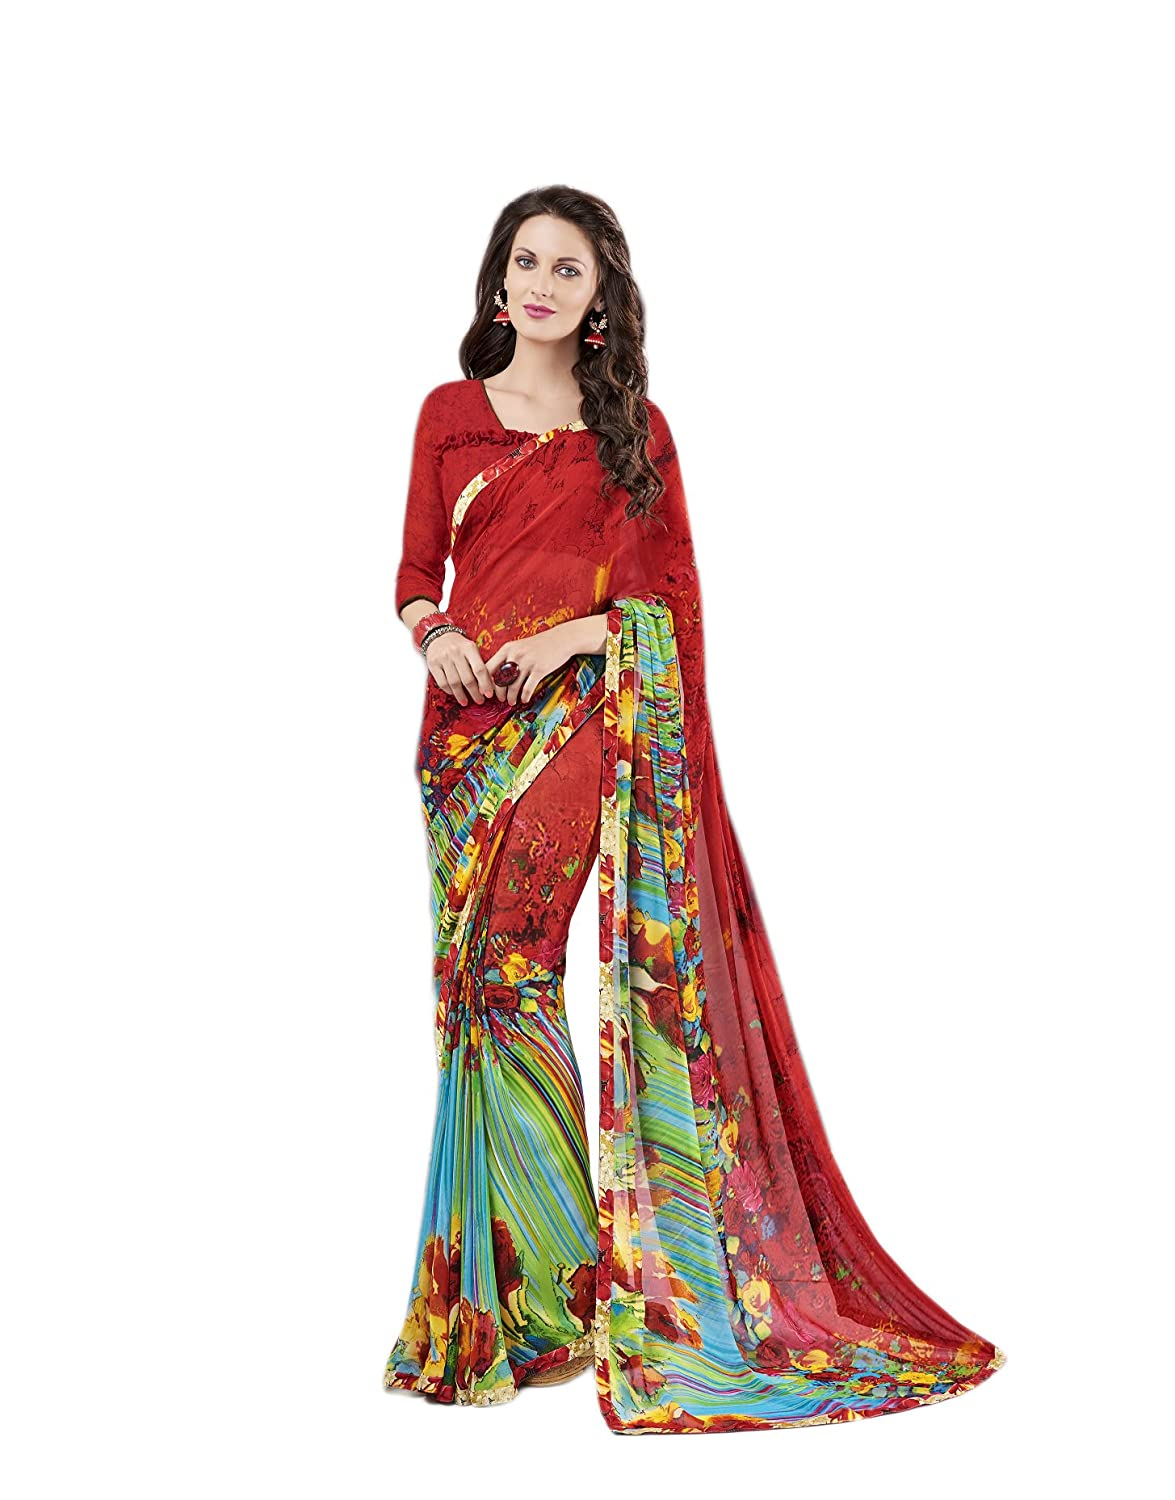 1b62f9e0 Top3: KIMANA Indian Designer Ethnic Bollywood Traditional Georgette Party  Wear Saree S4334